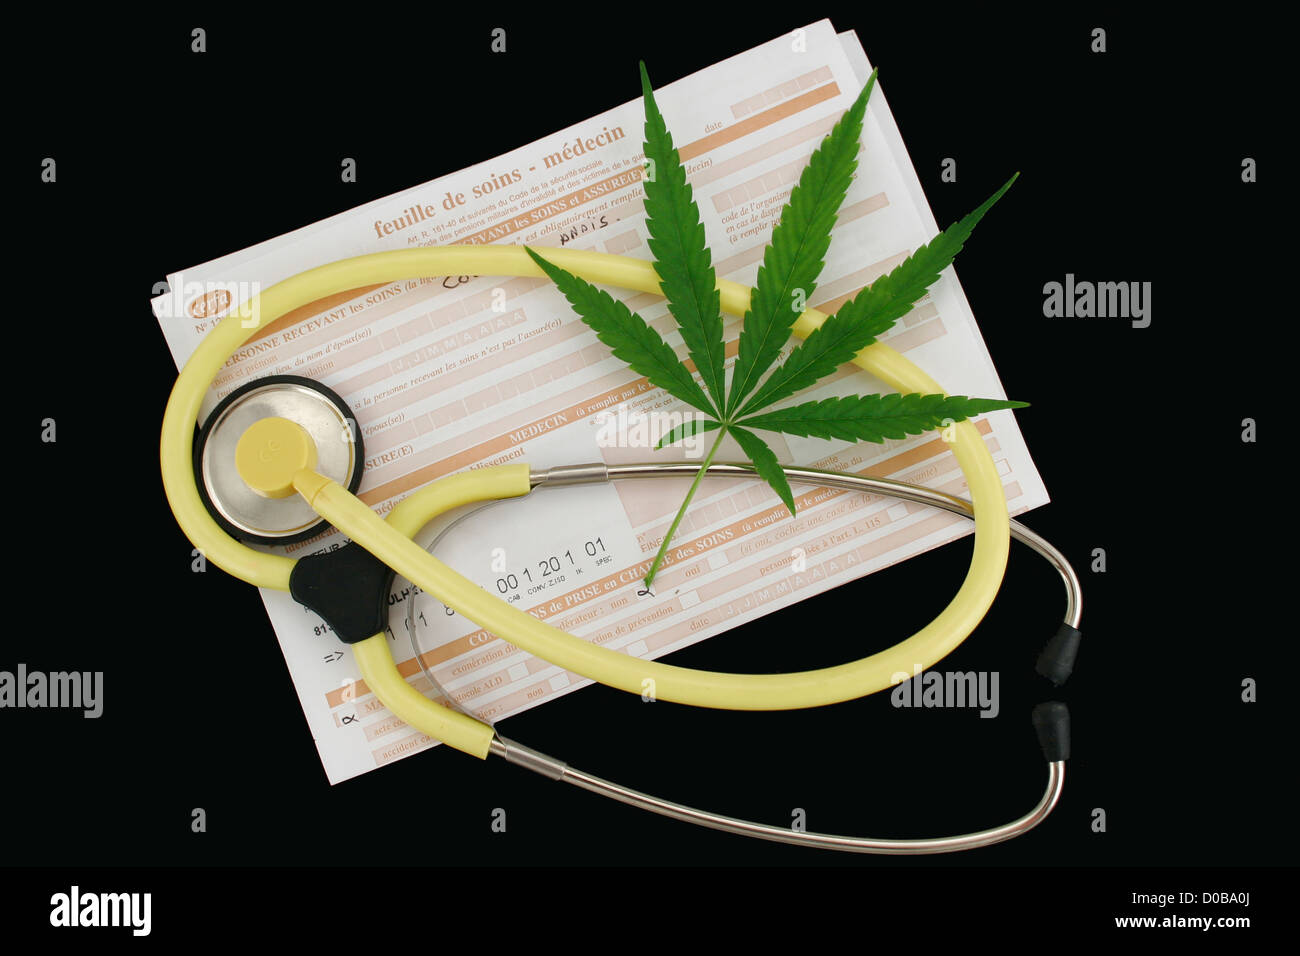 THERAPEUTIC CANNABIS - Stock Image